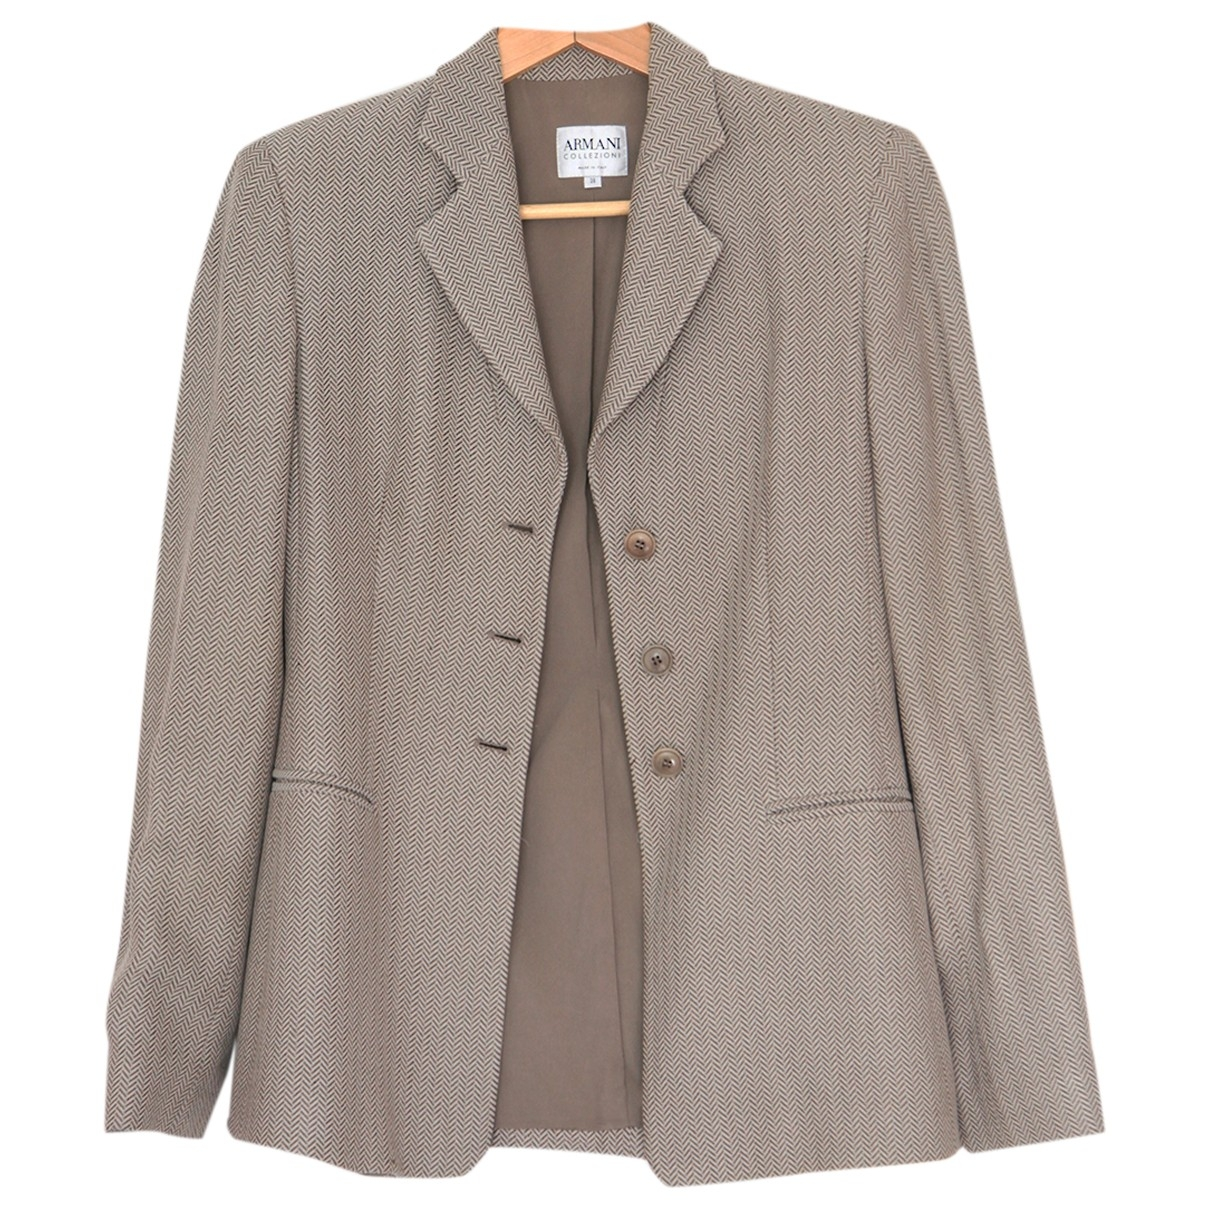 Armani Collezioni \N Grey jacket for Women 38 IT